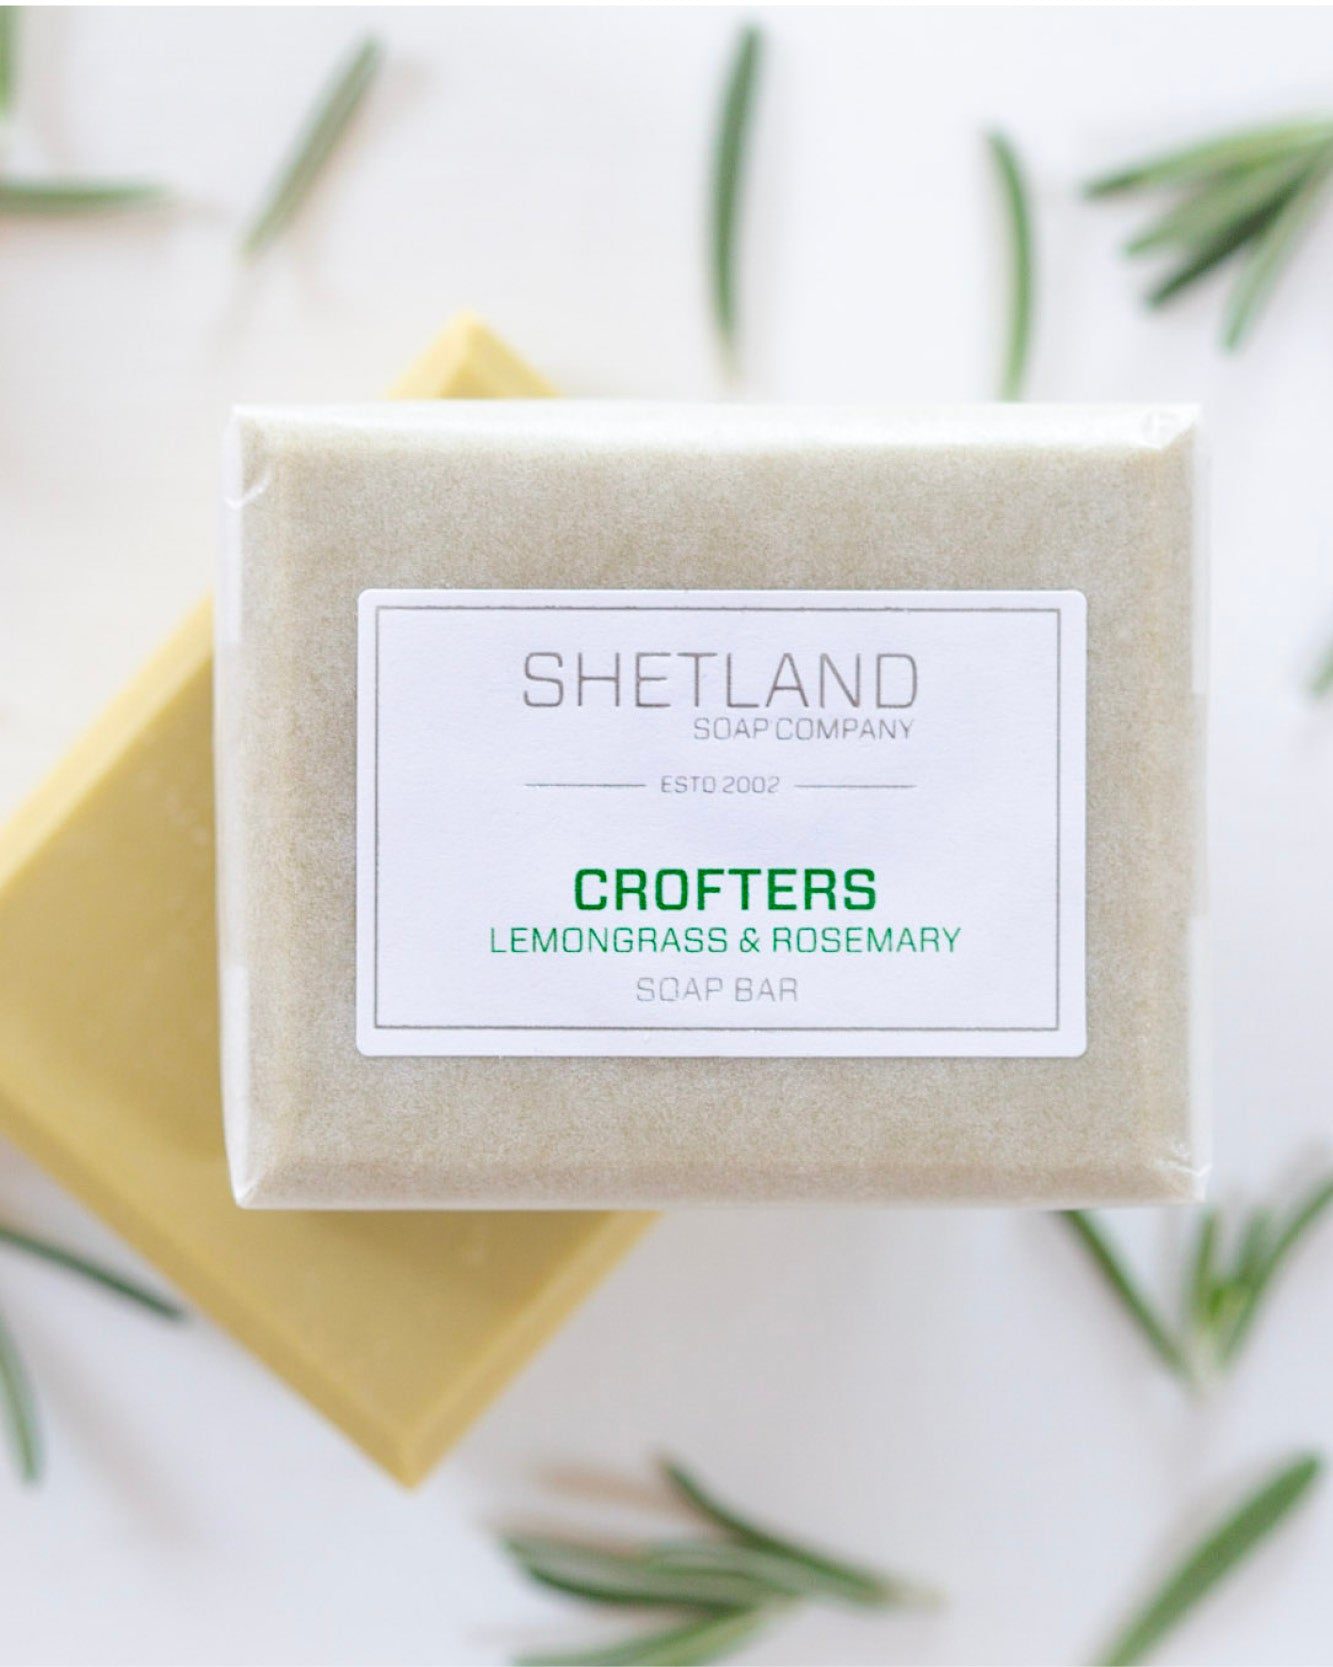 CROFTERS SOAP BAR